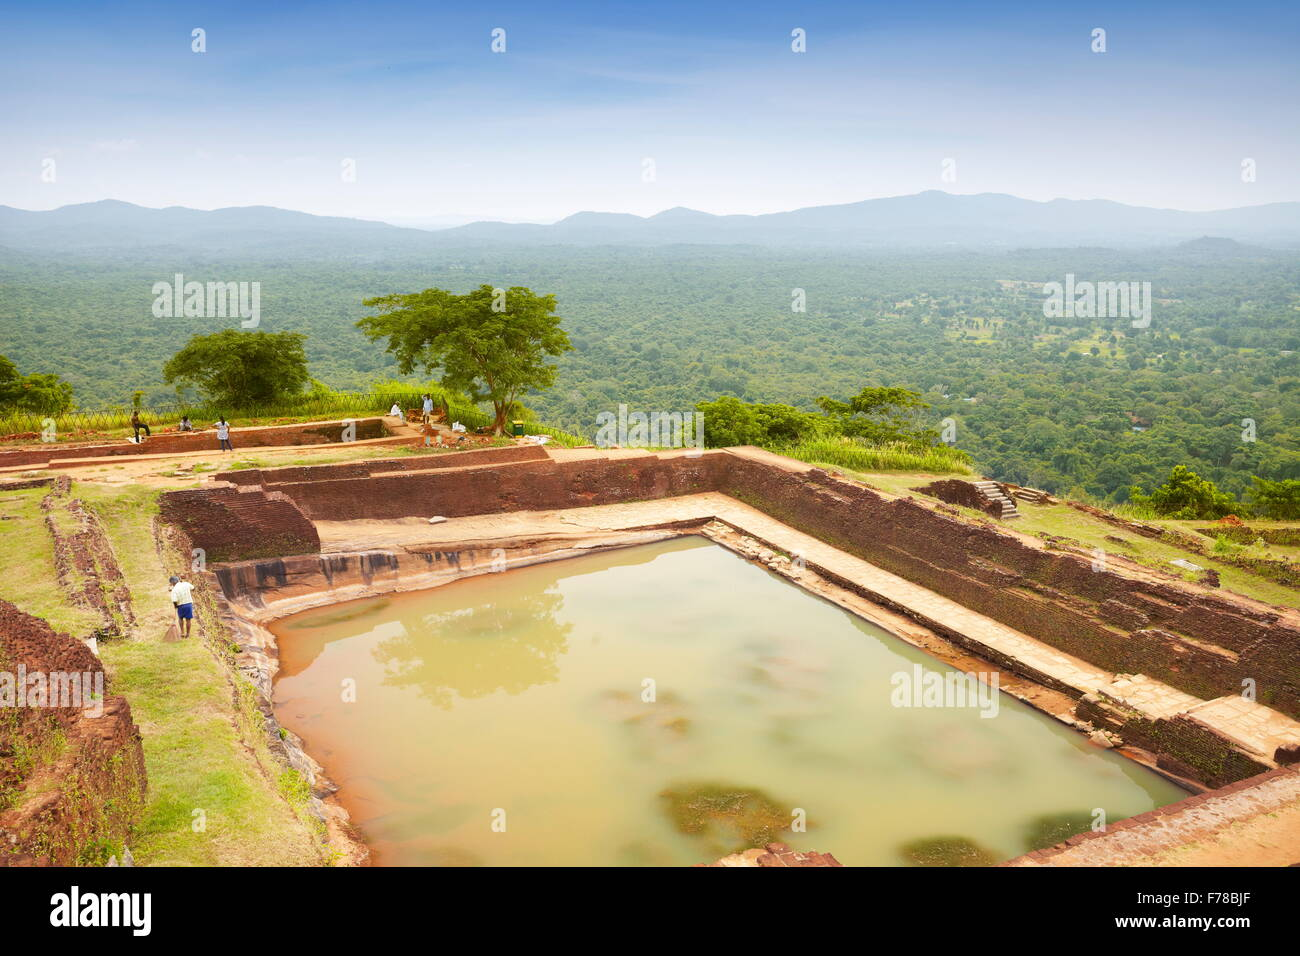 Sri Lanka - Sigiriya, ancient fortress, UNESCO World Heritage Site - Stock Image